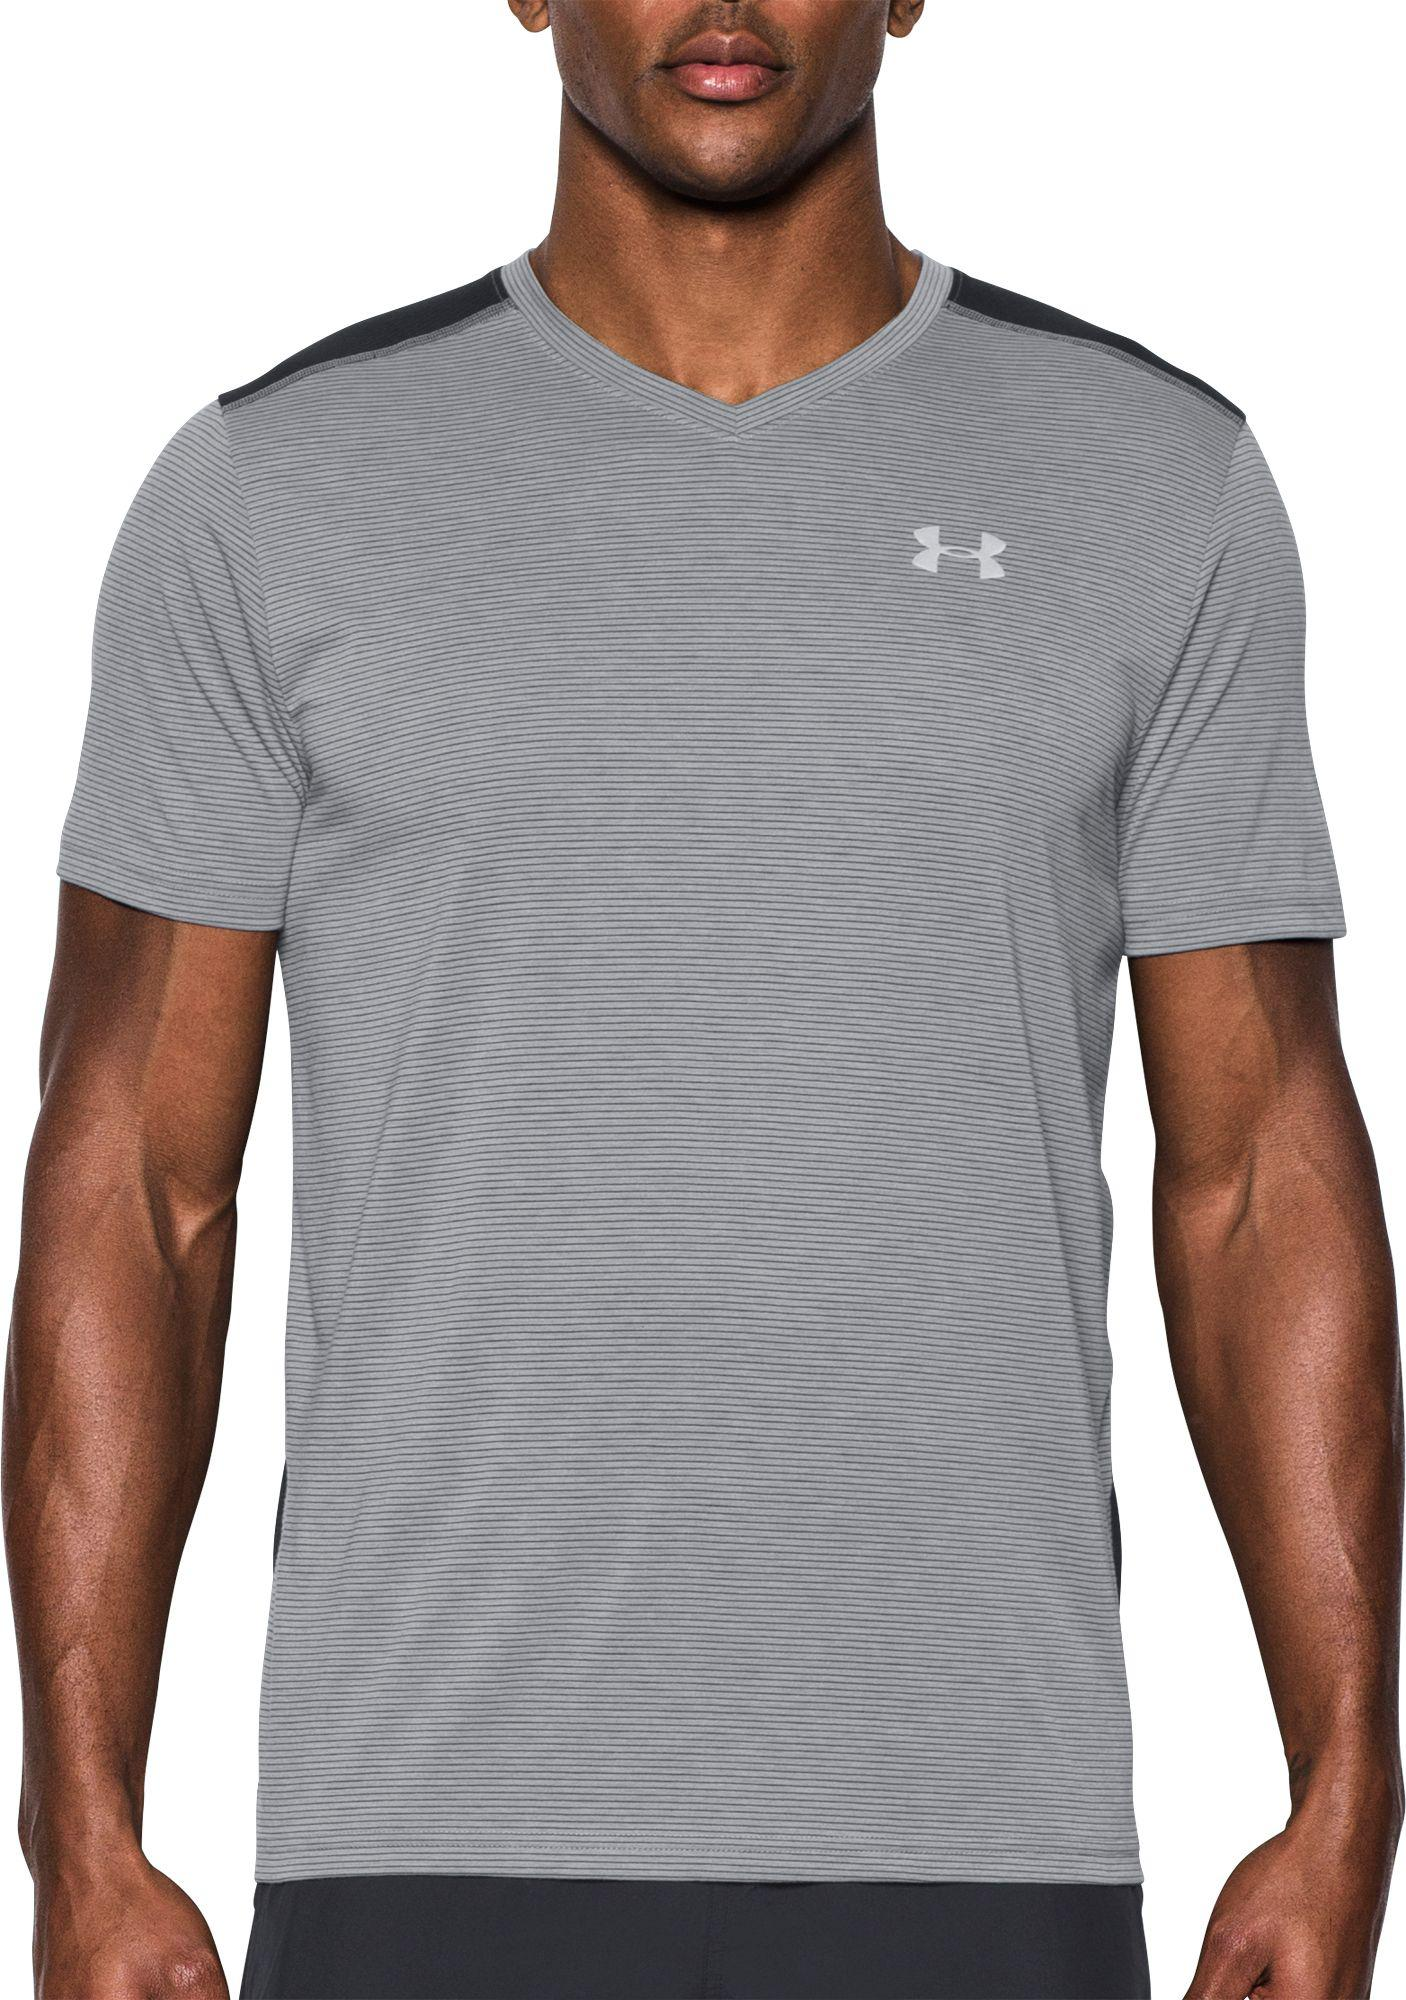 492776221a4e Under Armour Mens Tactical Heatgear Compression V Neck T Shirt ...